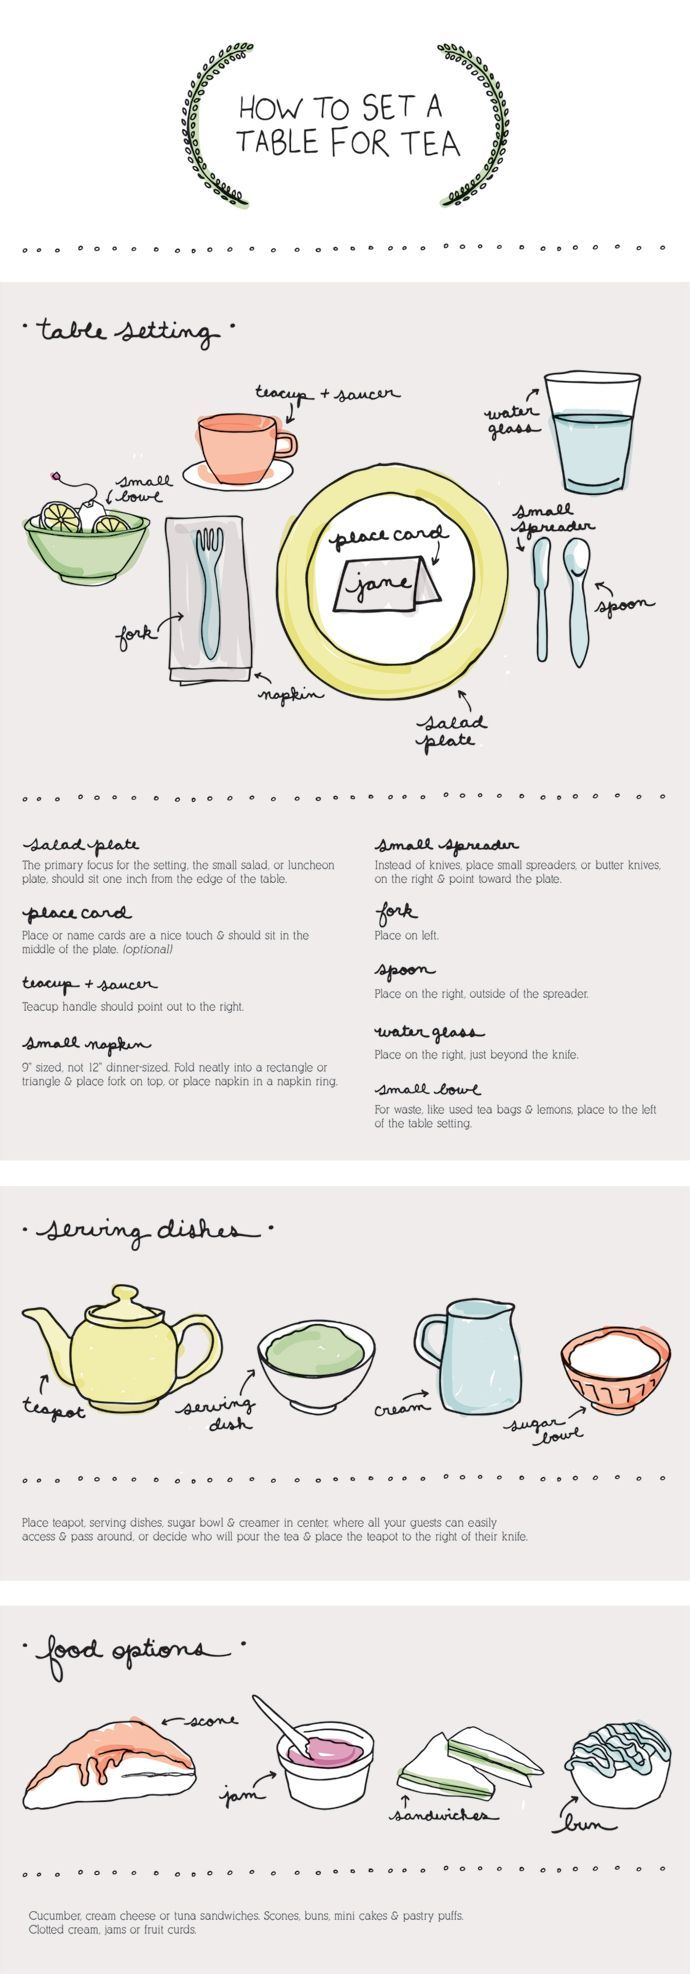 the set up how to set a table for tea [ 690 x 1974 Pixel ]